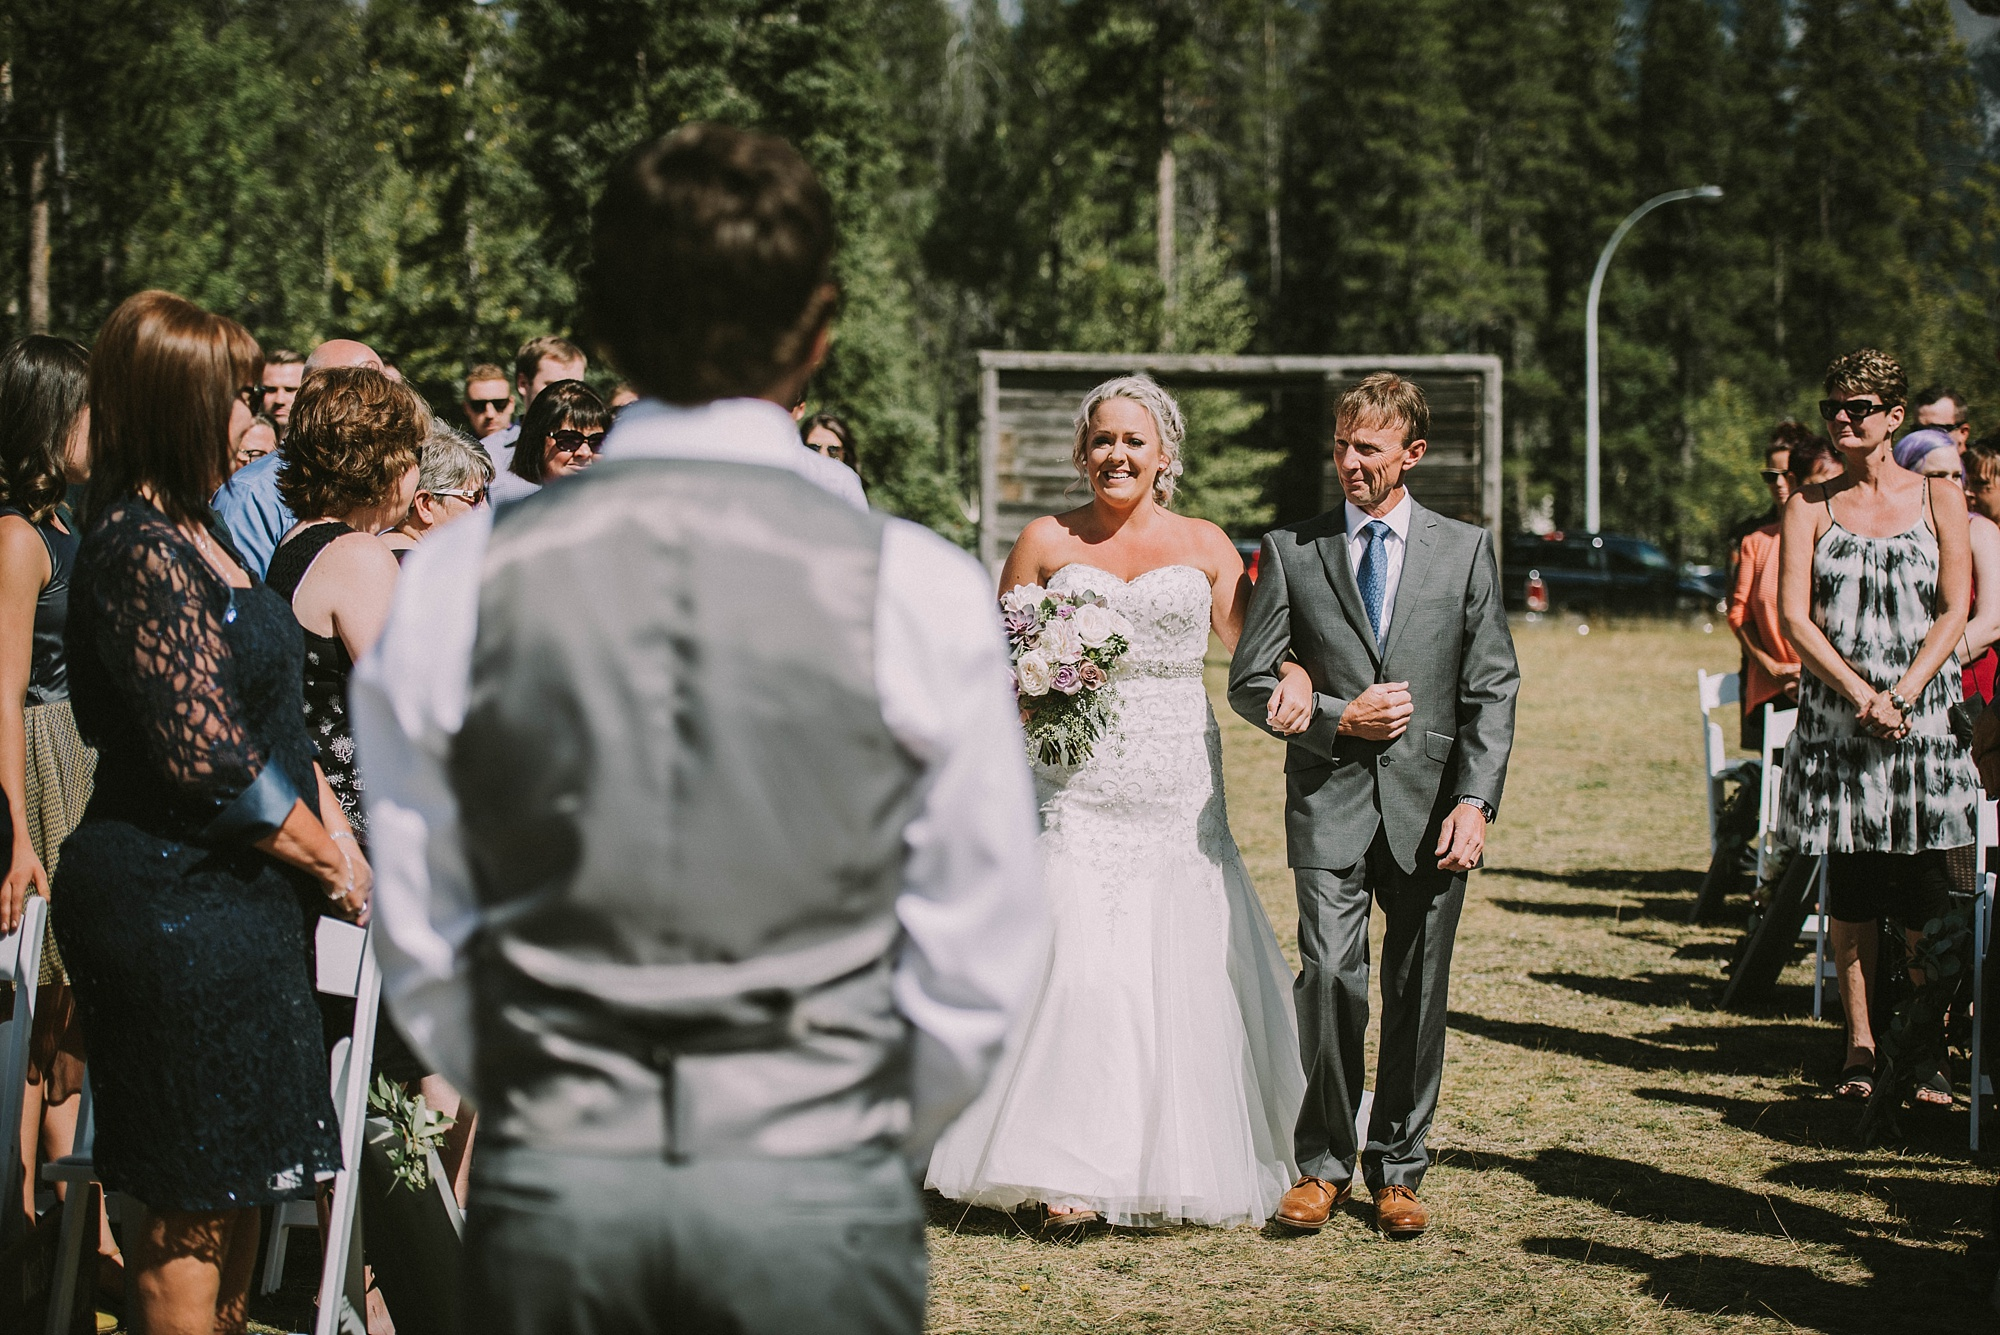 Canmore Wedding, Canmore Wedding Photographer, Canmore Wedding Photography, Banff Wedding Photographer, Banff Wedding Photography, Banff Wedding